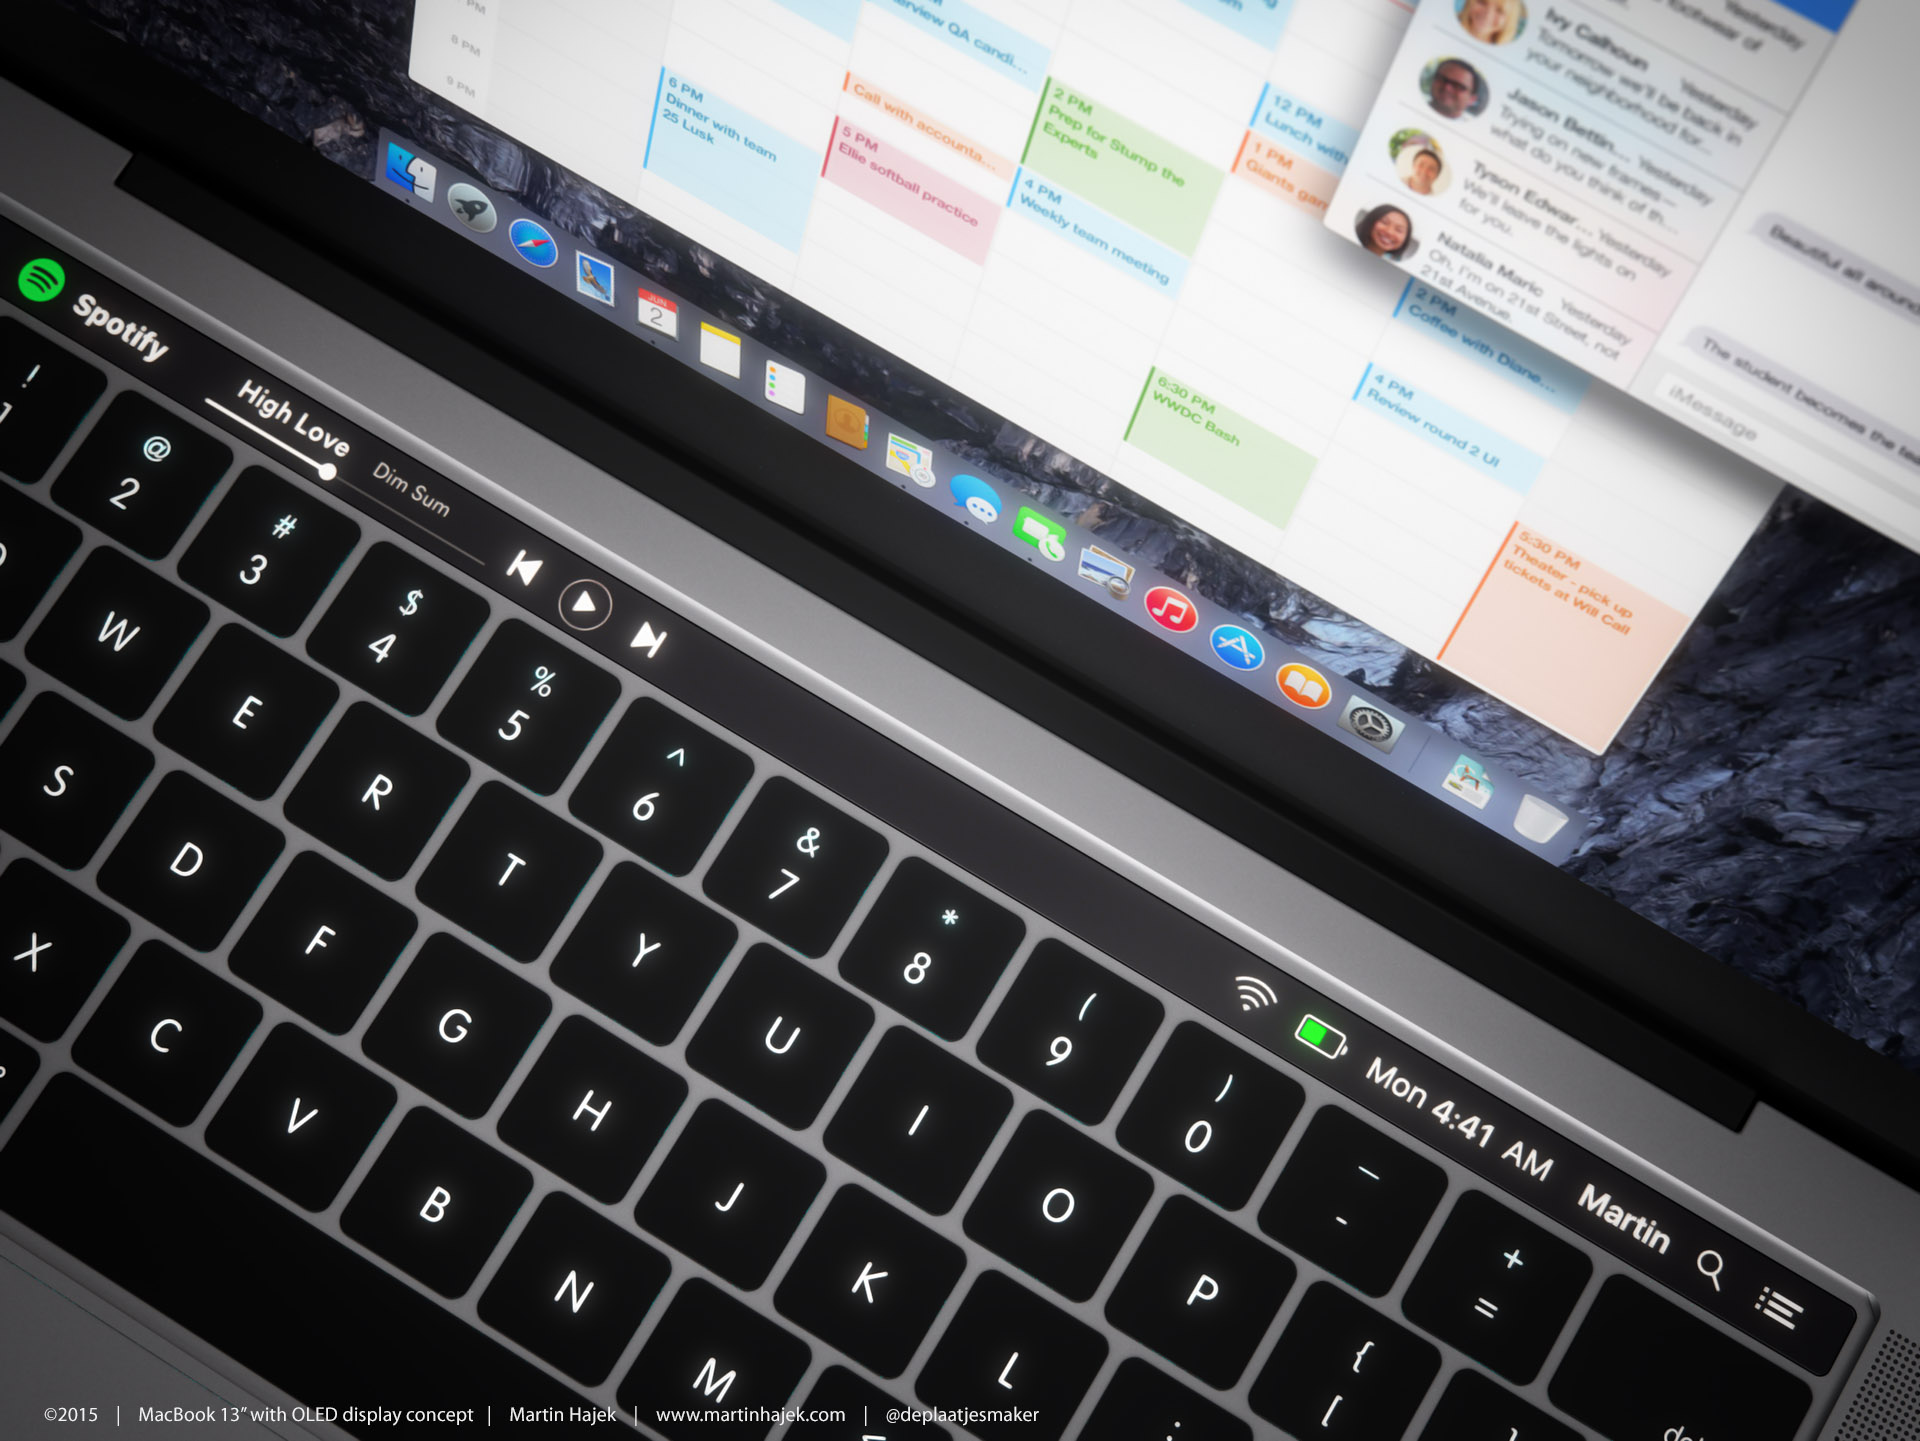 MACBOOK PRO 2016 avec Touch Bar OLED